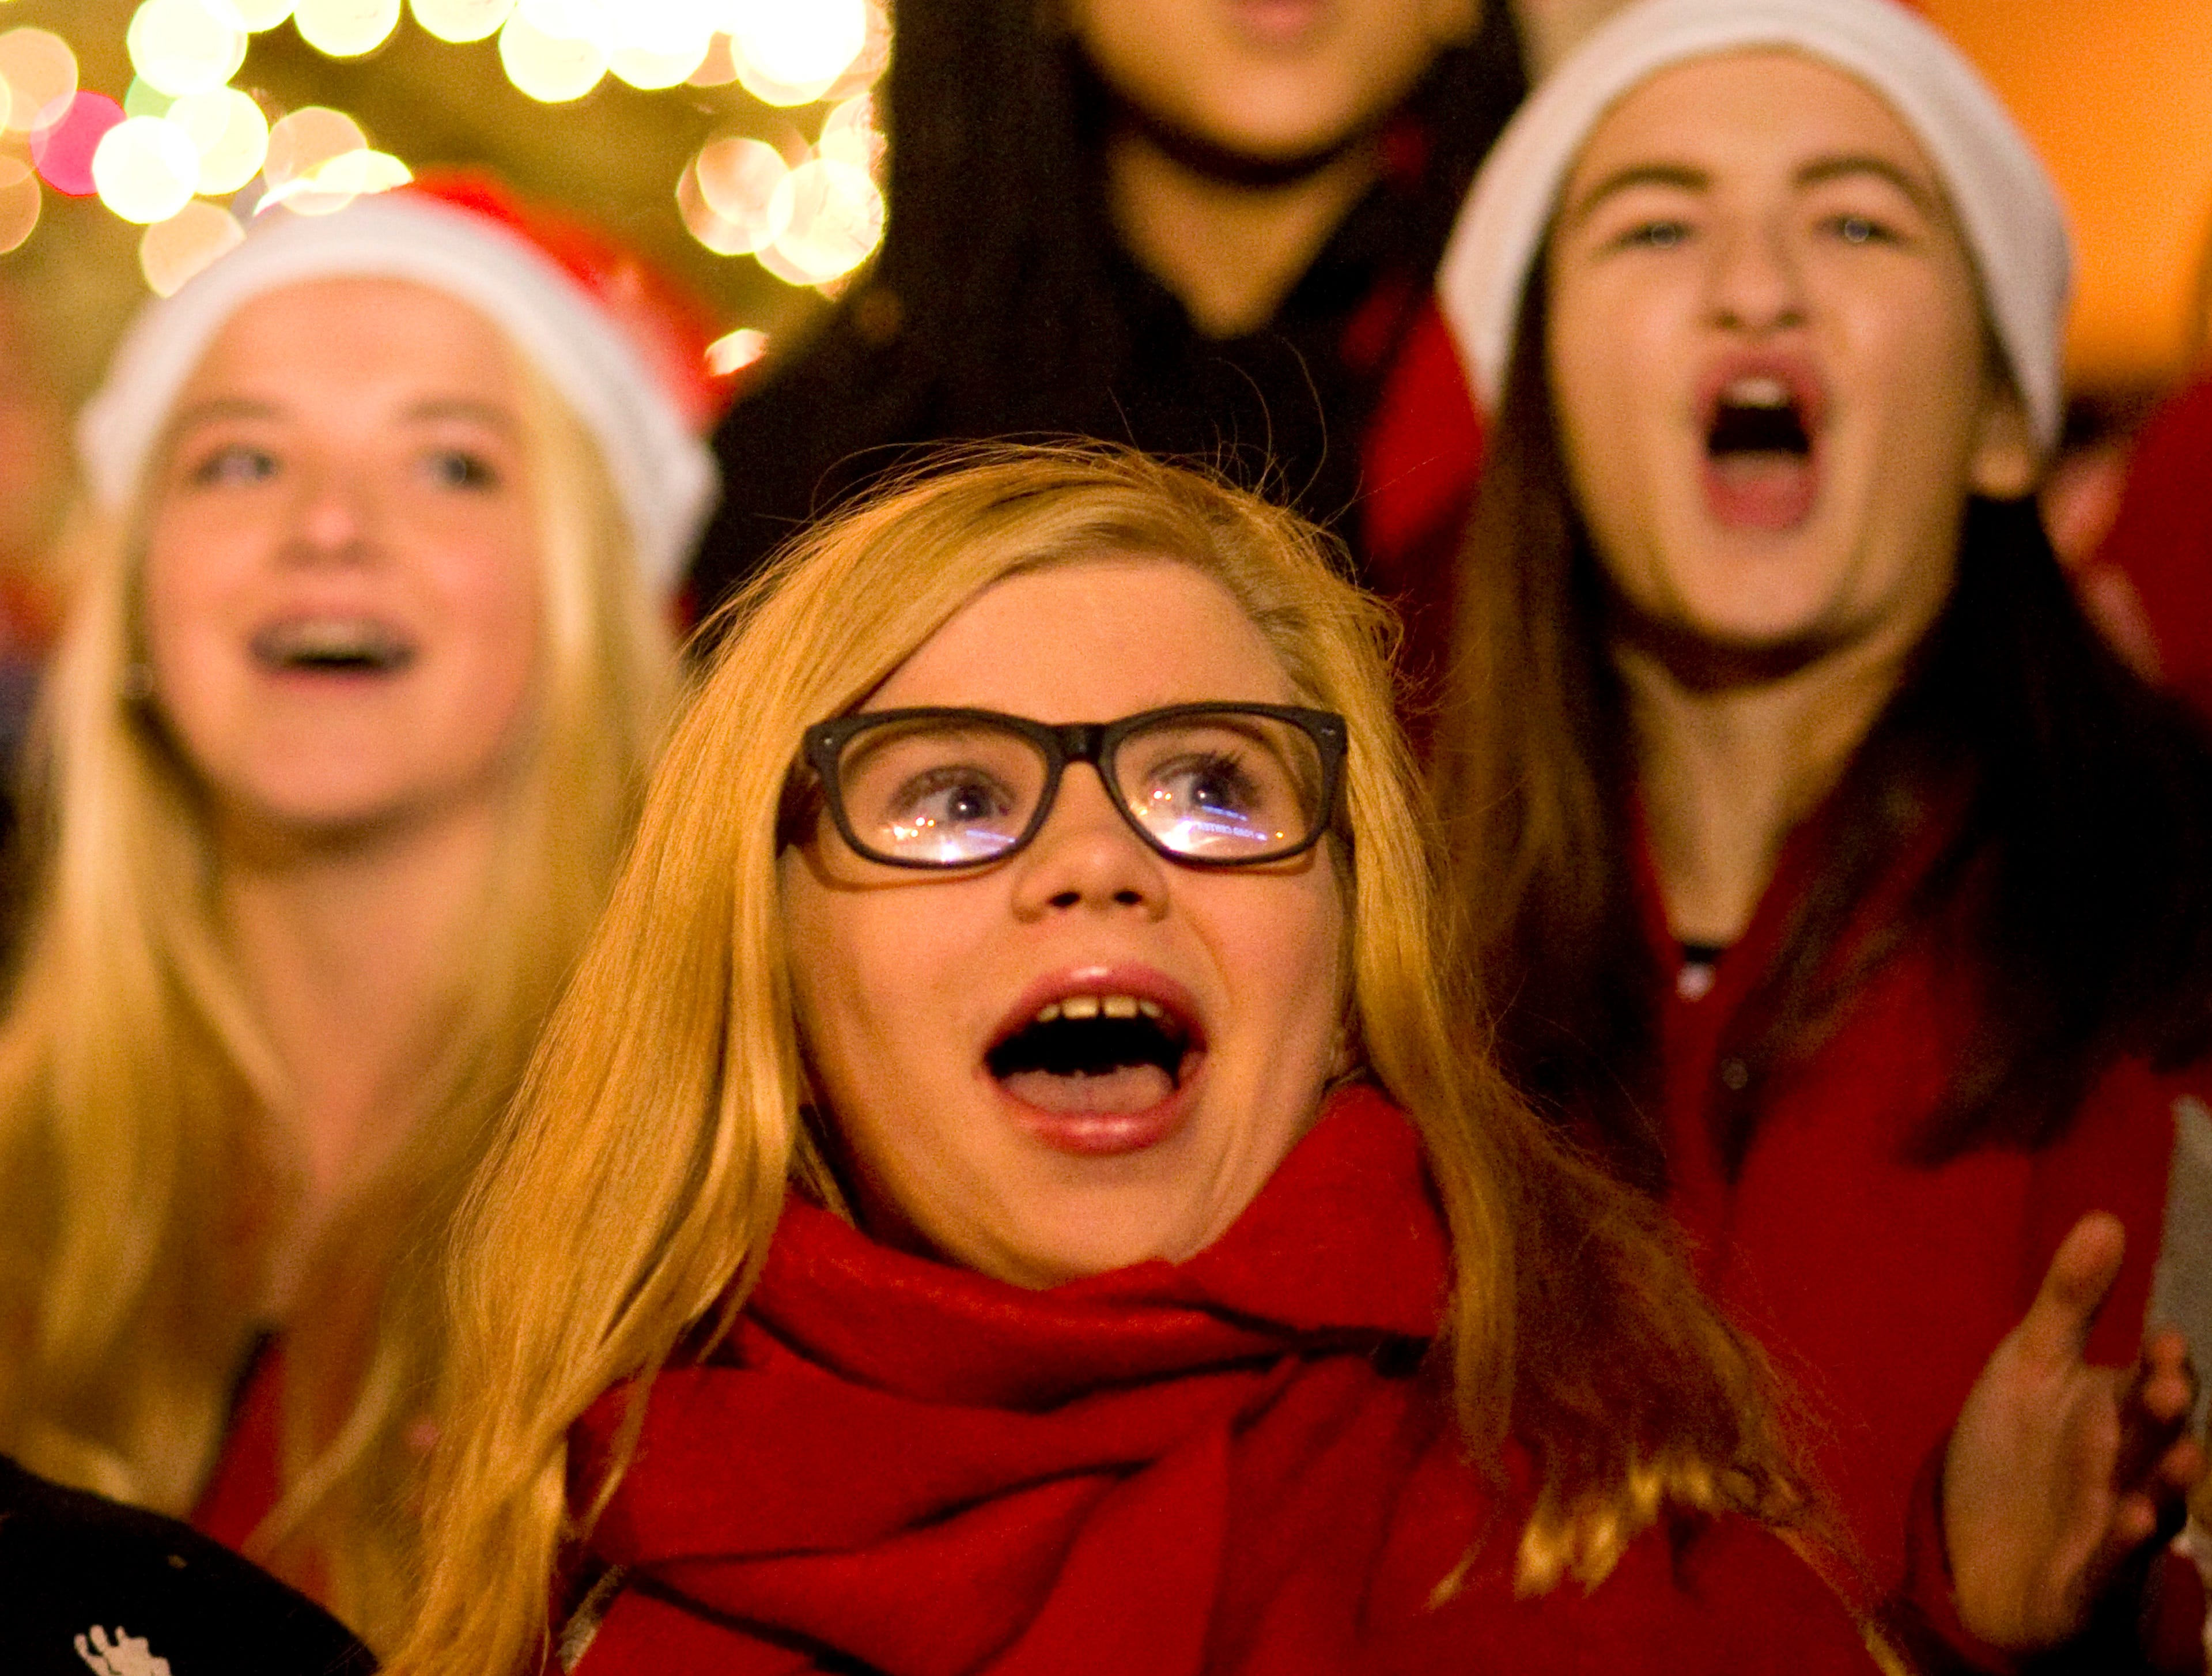 Shae Marks, 17, (center) sings at the tree lighting ceremony in front of the Civic Center with the Bosse High School and Reitz High School choirs Friday night. The tree, a 24-foot-tall blue spruce was donned with 12,000 lights.